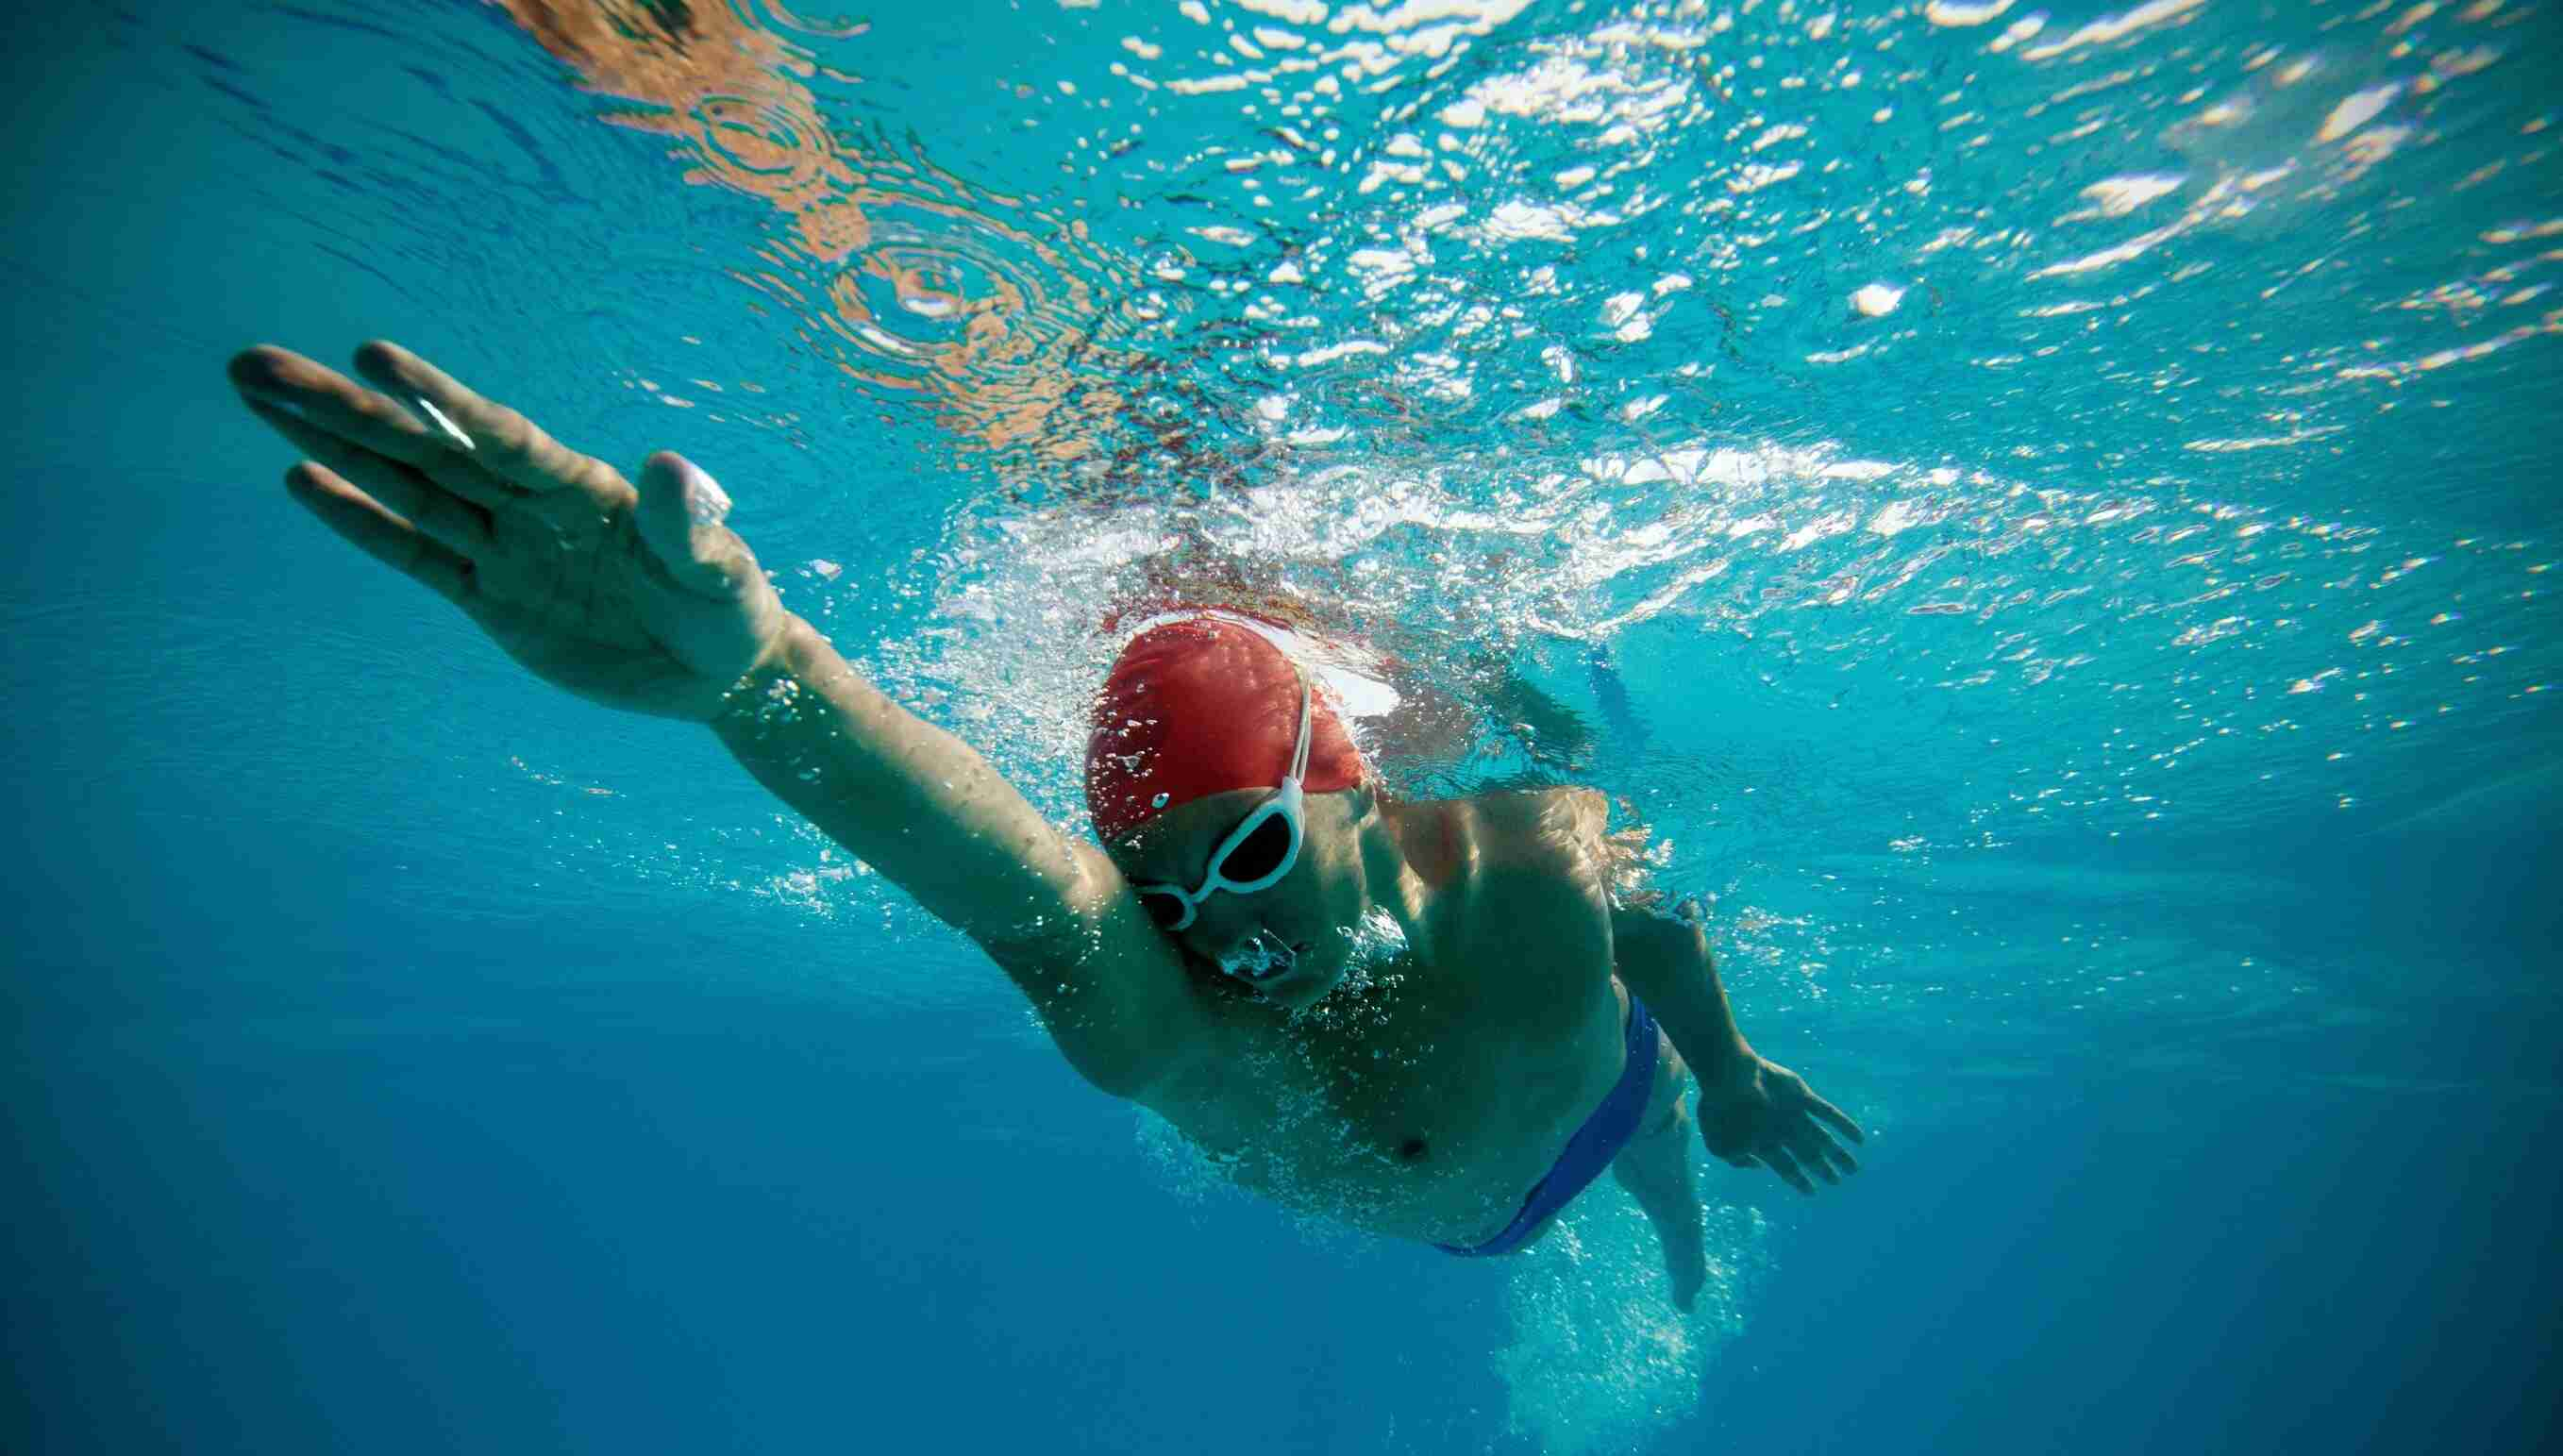 man_swims-480890-edited.jpg